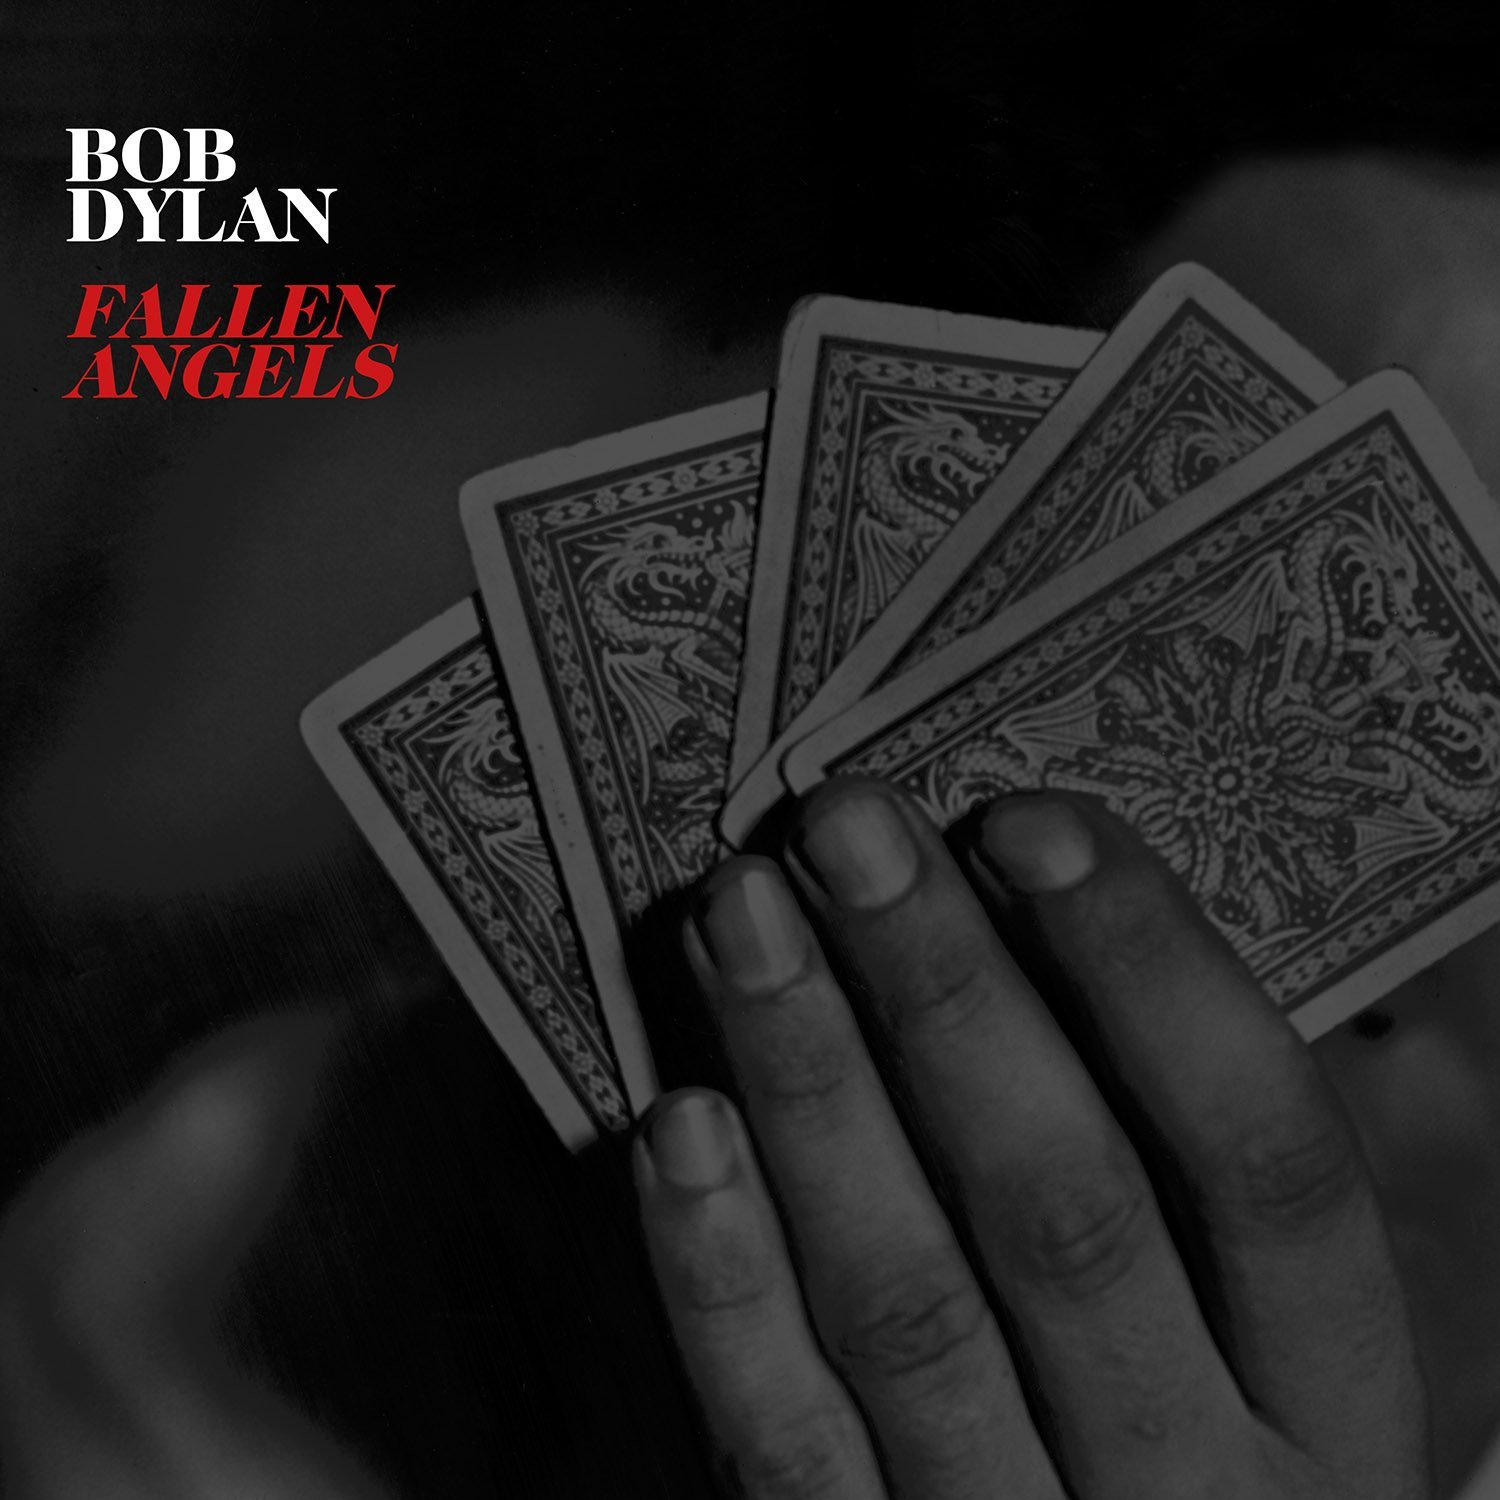 CD_Bob Dylan_Fallen Angels